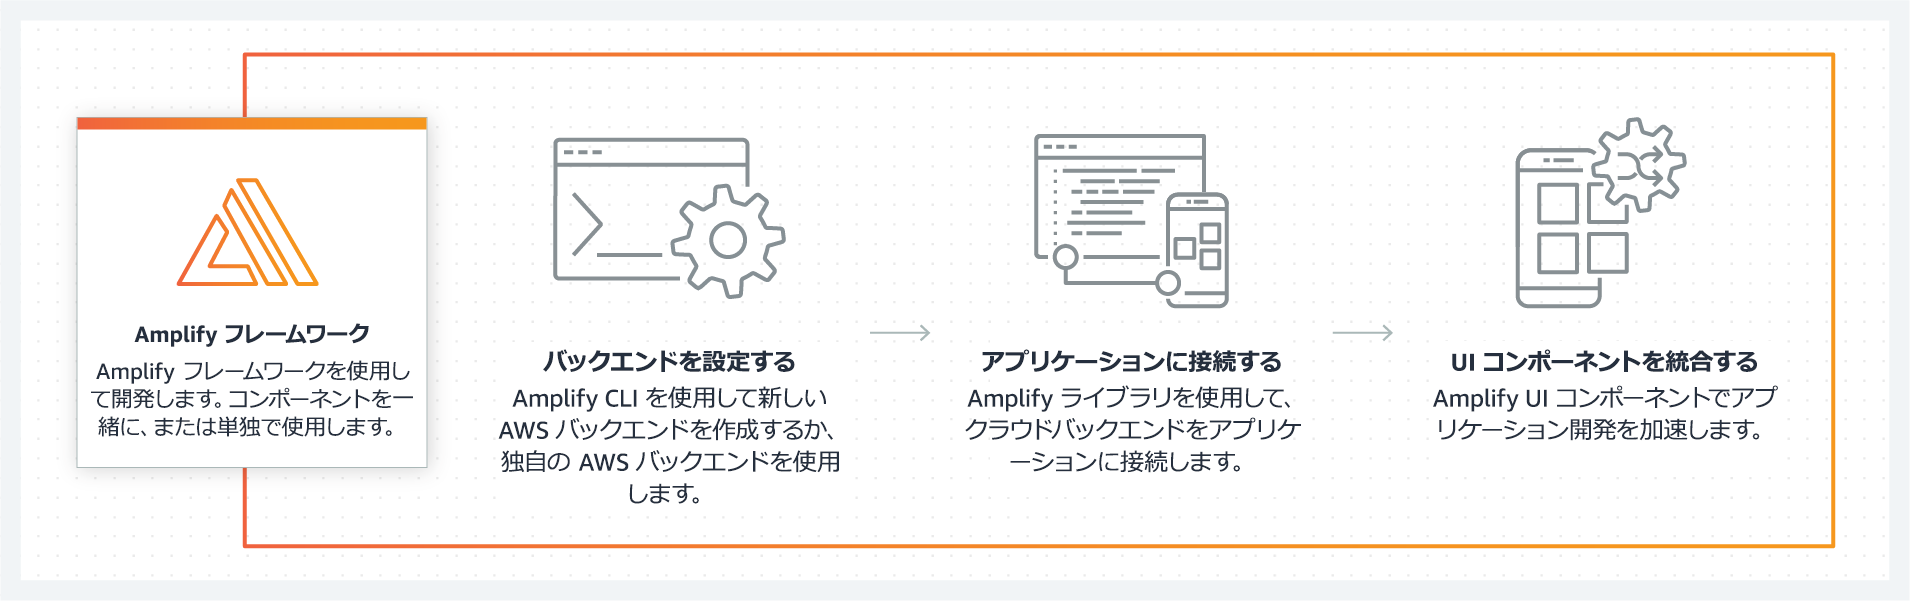 product-page-diagram_Amplify_How-it-works_1_jp